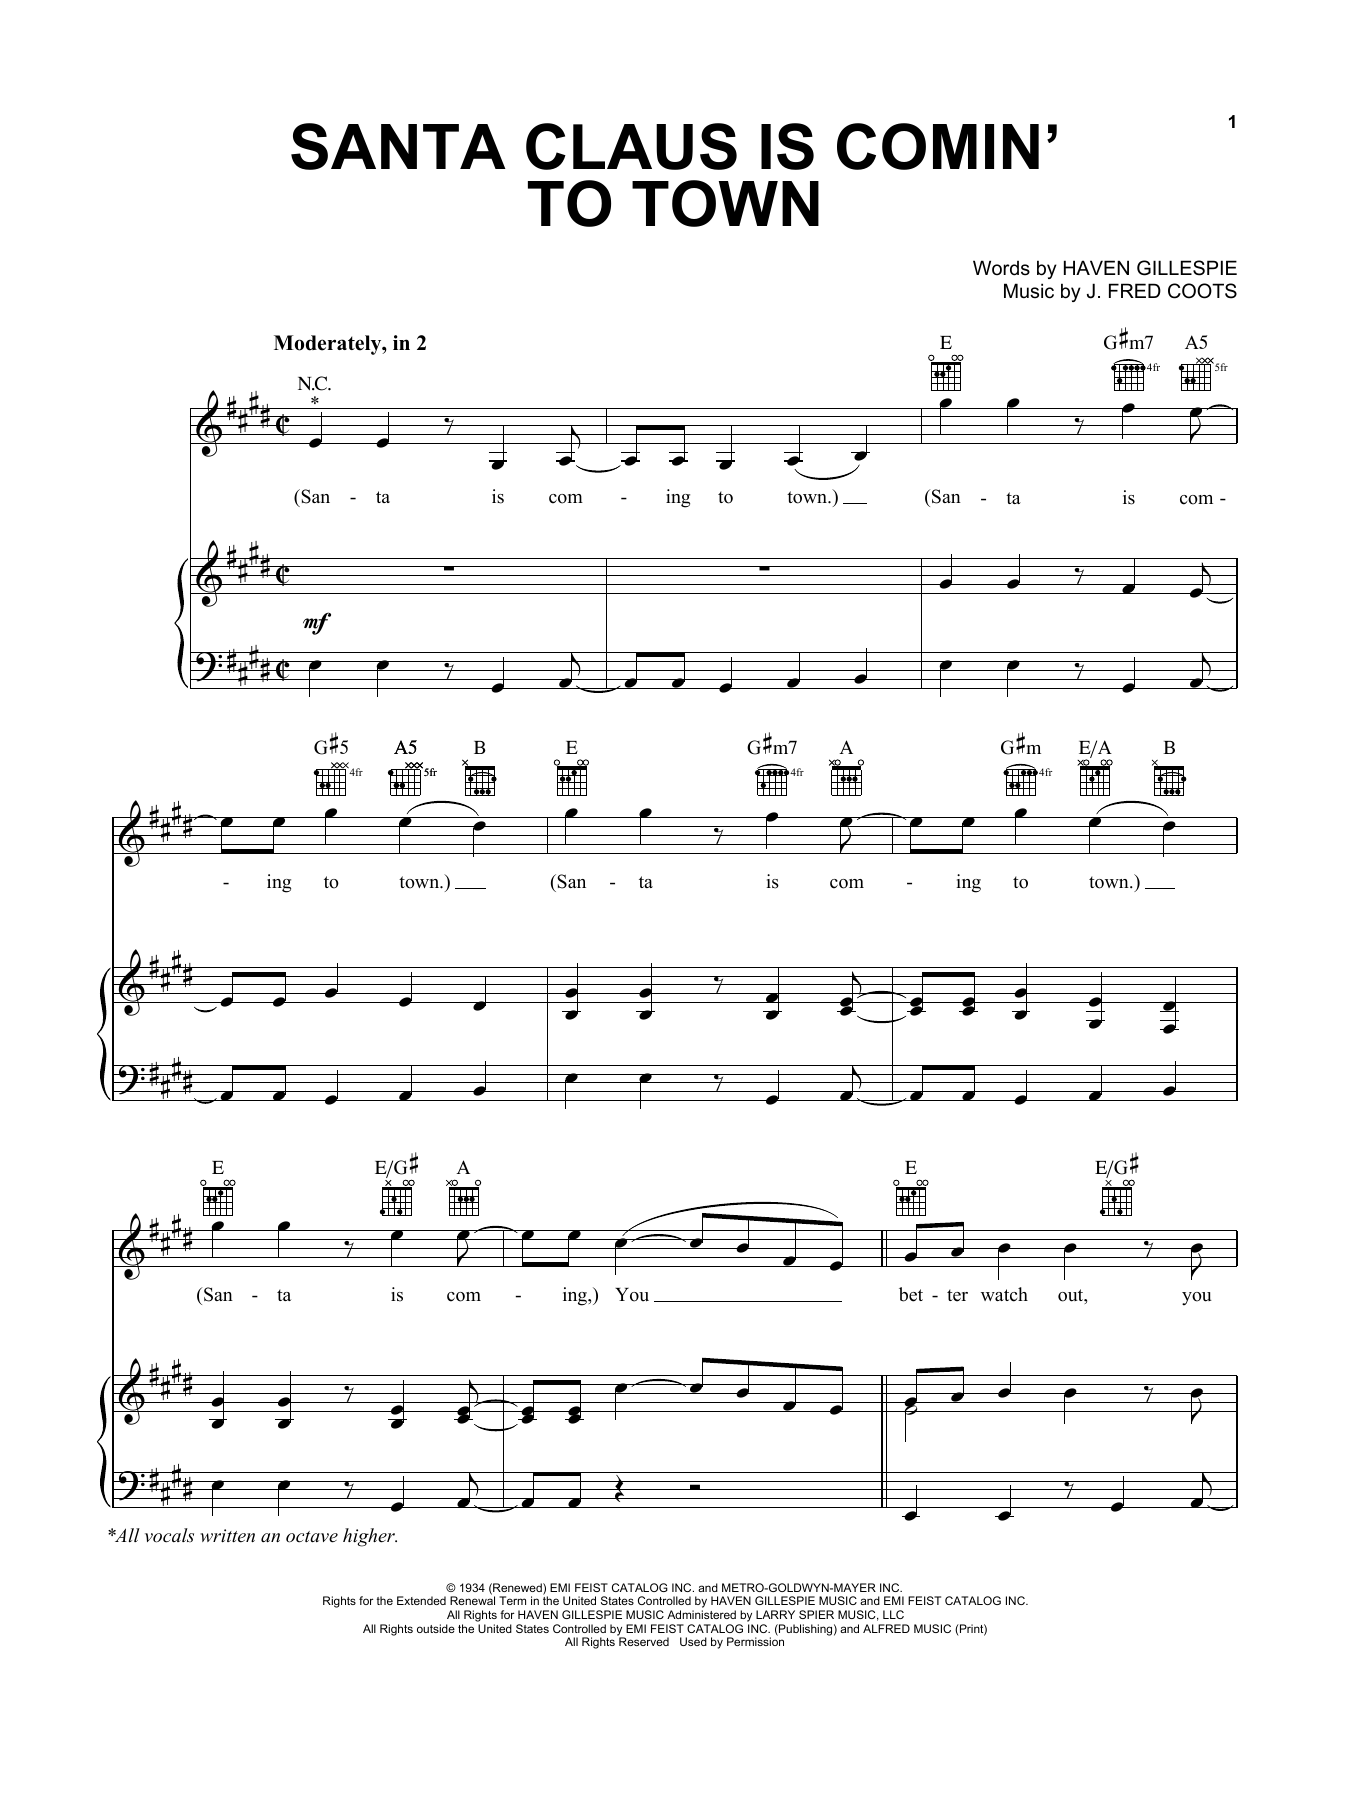 Sheet Music Digital Files To Print Licensed Steve Tyrell Digital